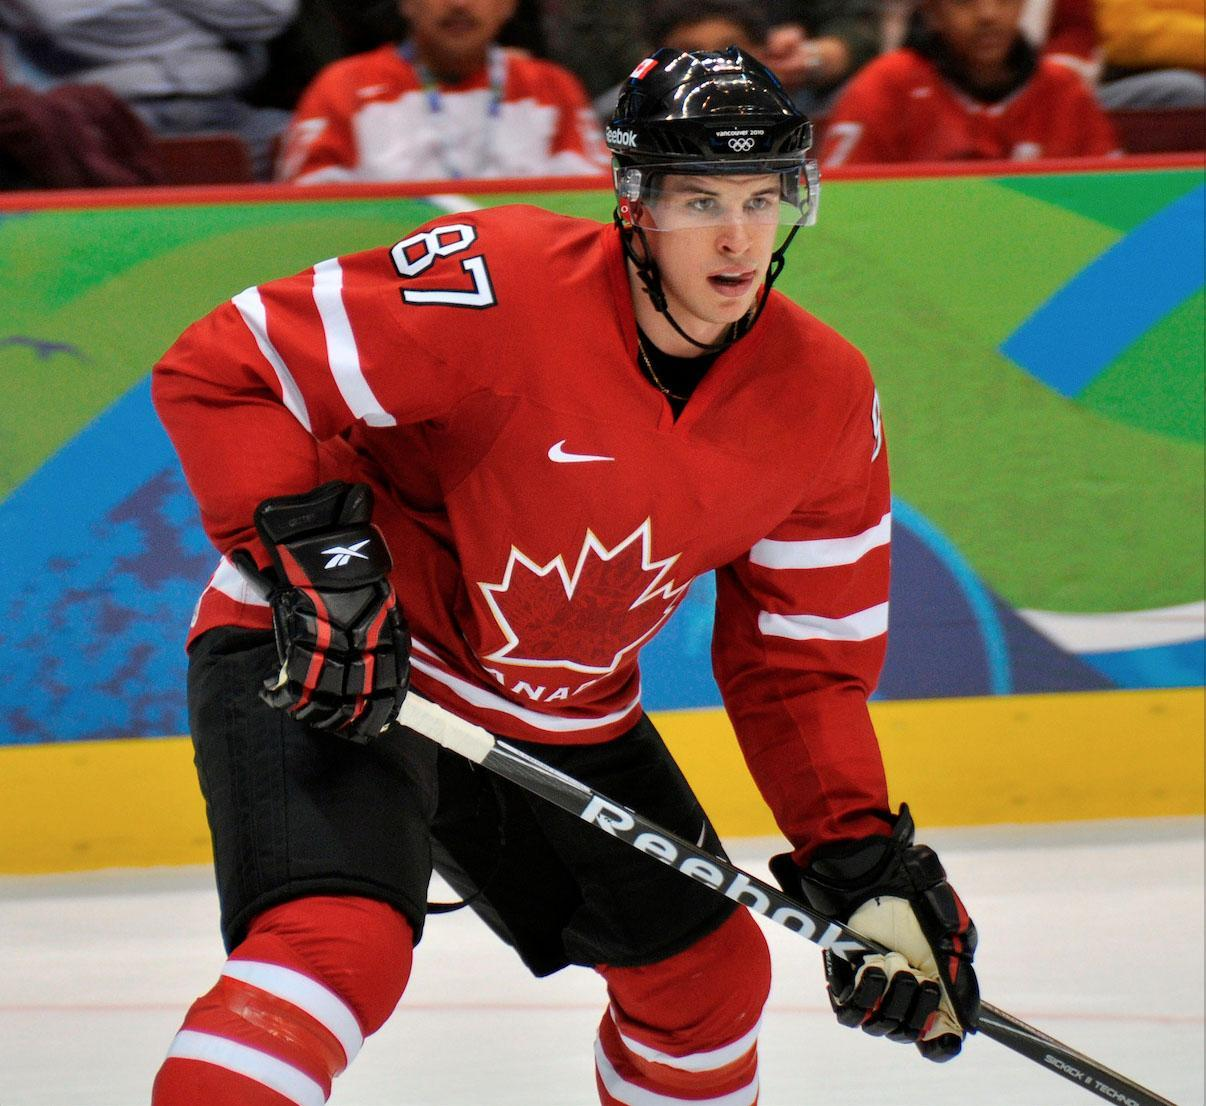 Canada's pride and joy Sid the Kid is a generational talent, despite what critics and Ovechkin advocates may say